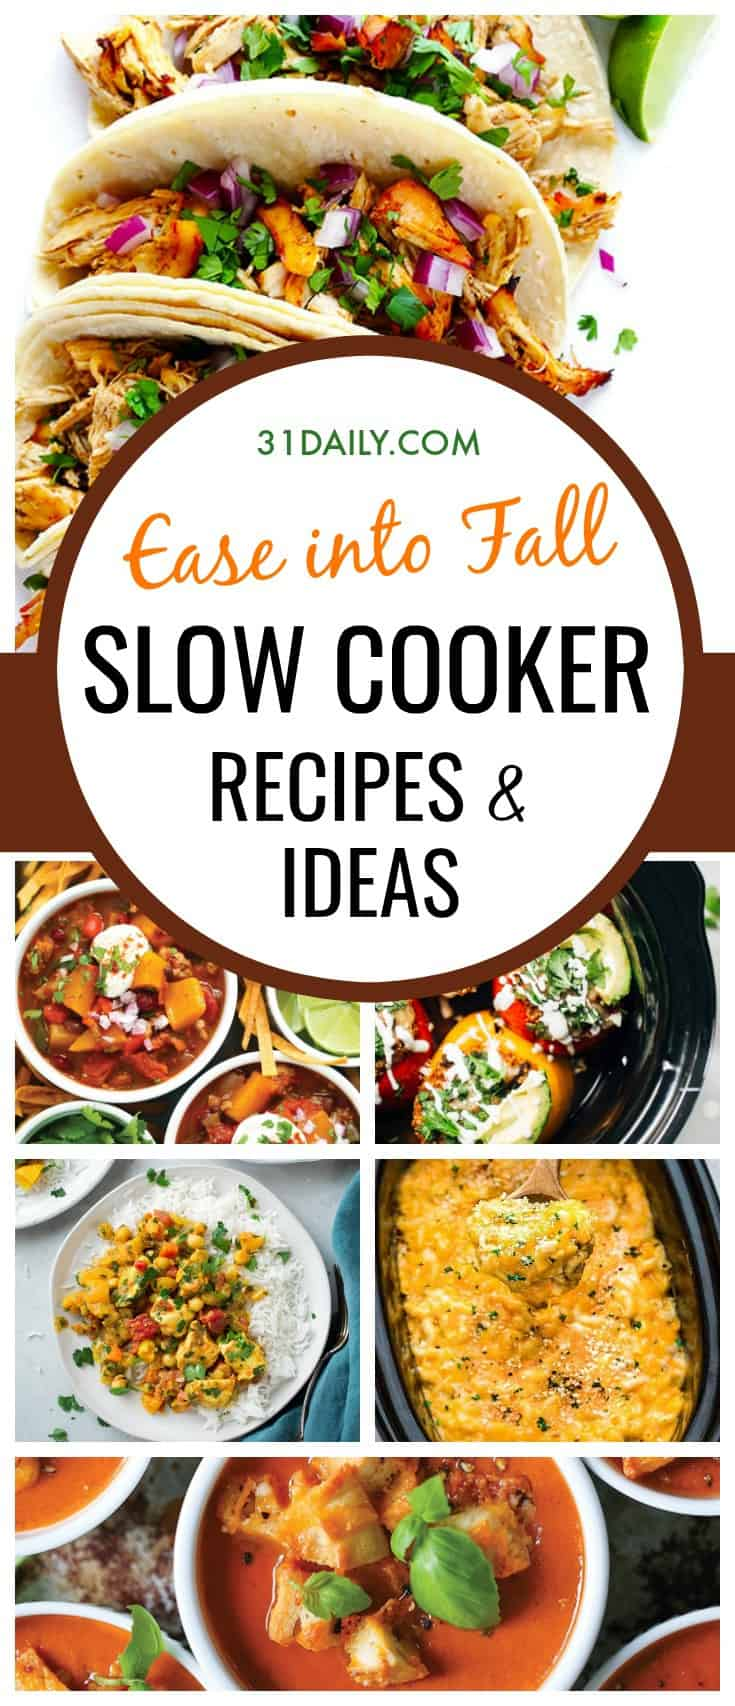 Slow Cooker Recipes and Ideas to Ease into Fall | 31Daily.com